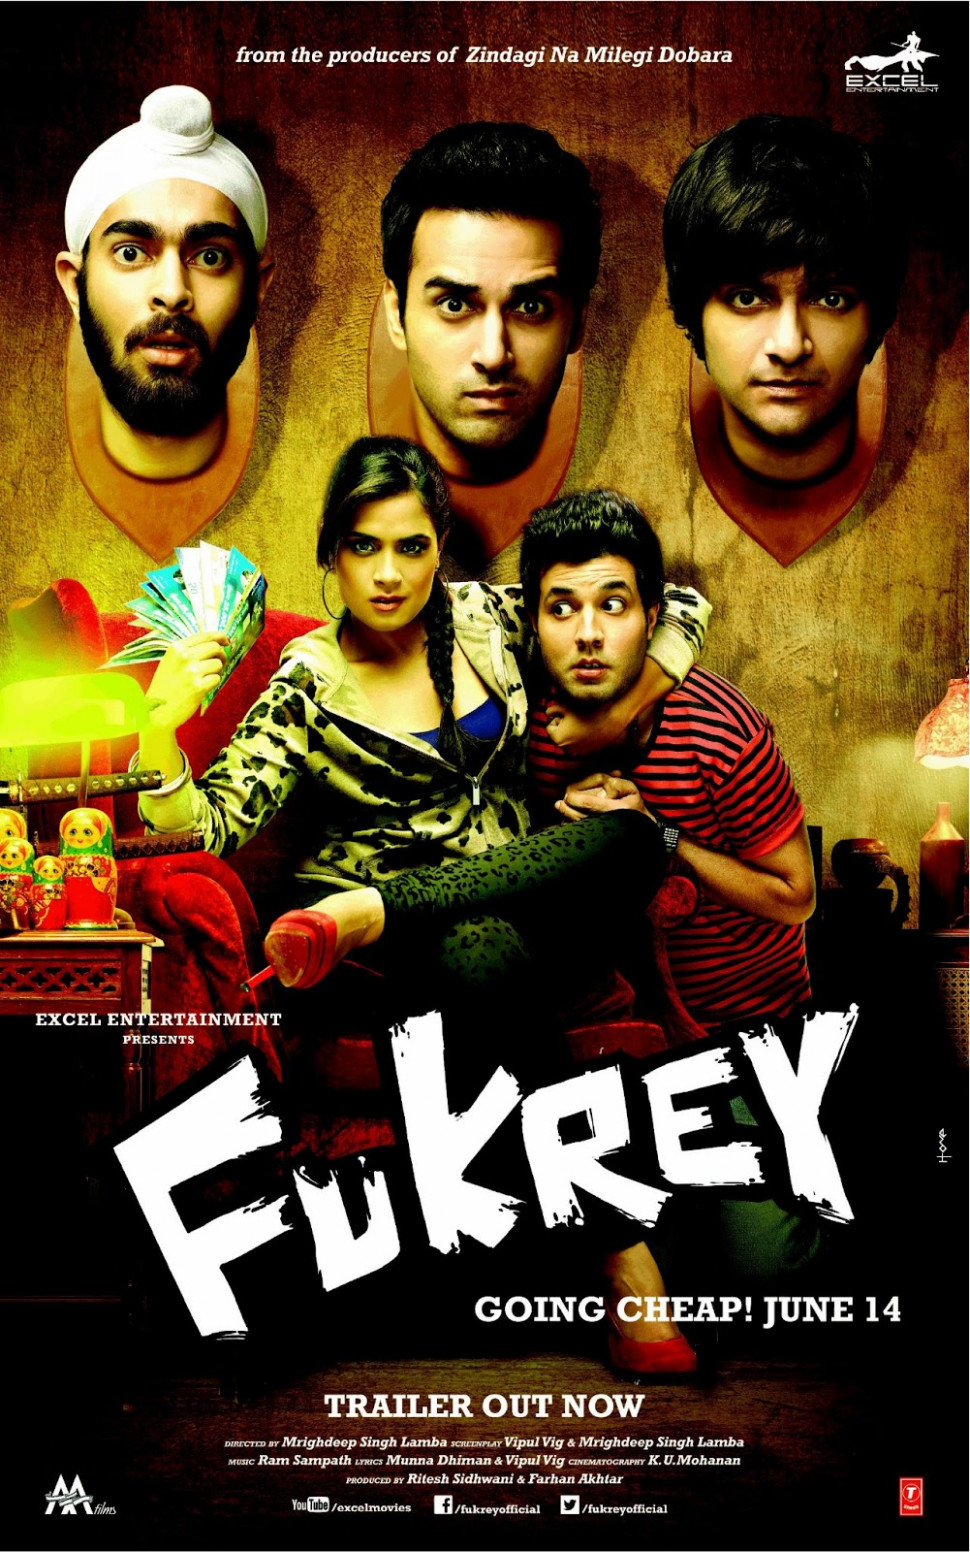 new release of bollywood movie - Movie Search Engine at ...